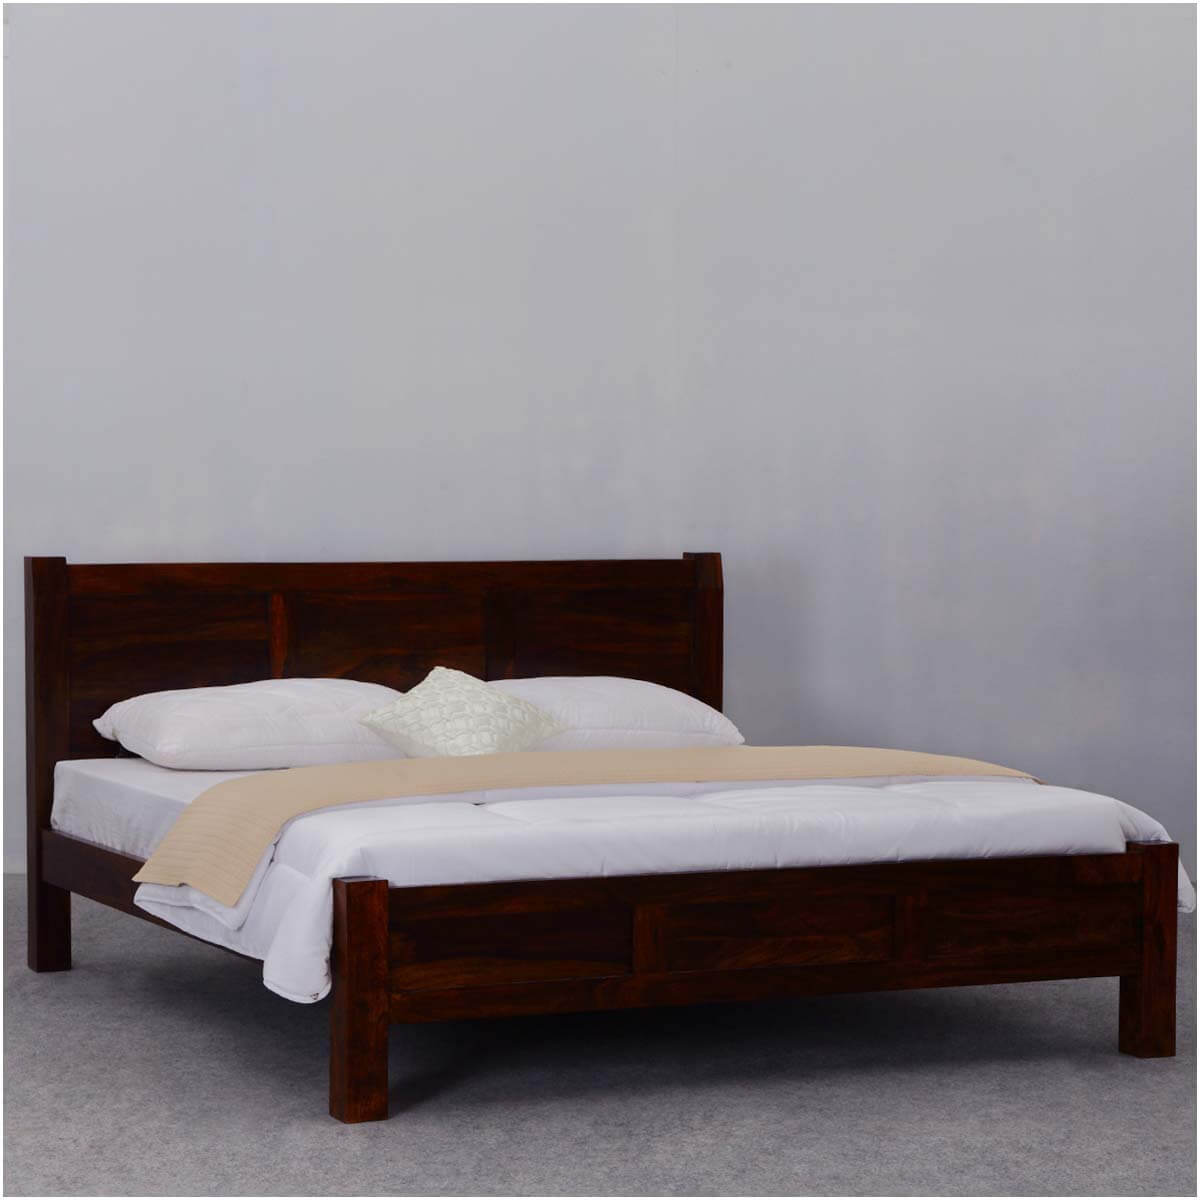 Rustic Mediterranean Modern Style California King Size Bed